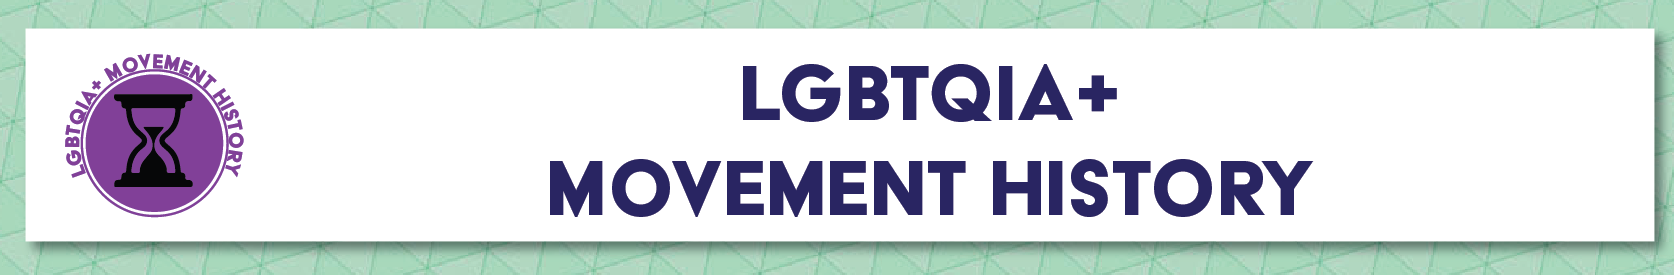 Resources: LGBTQIA+ Movement History